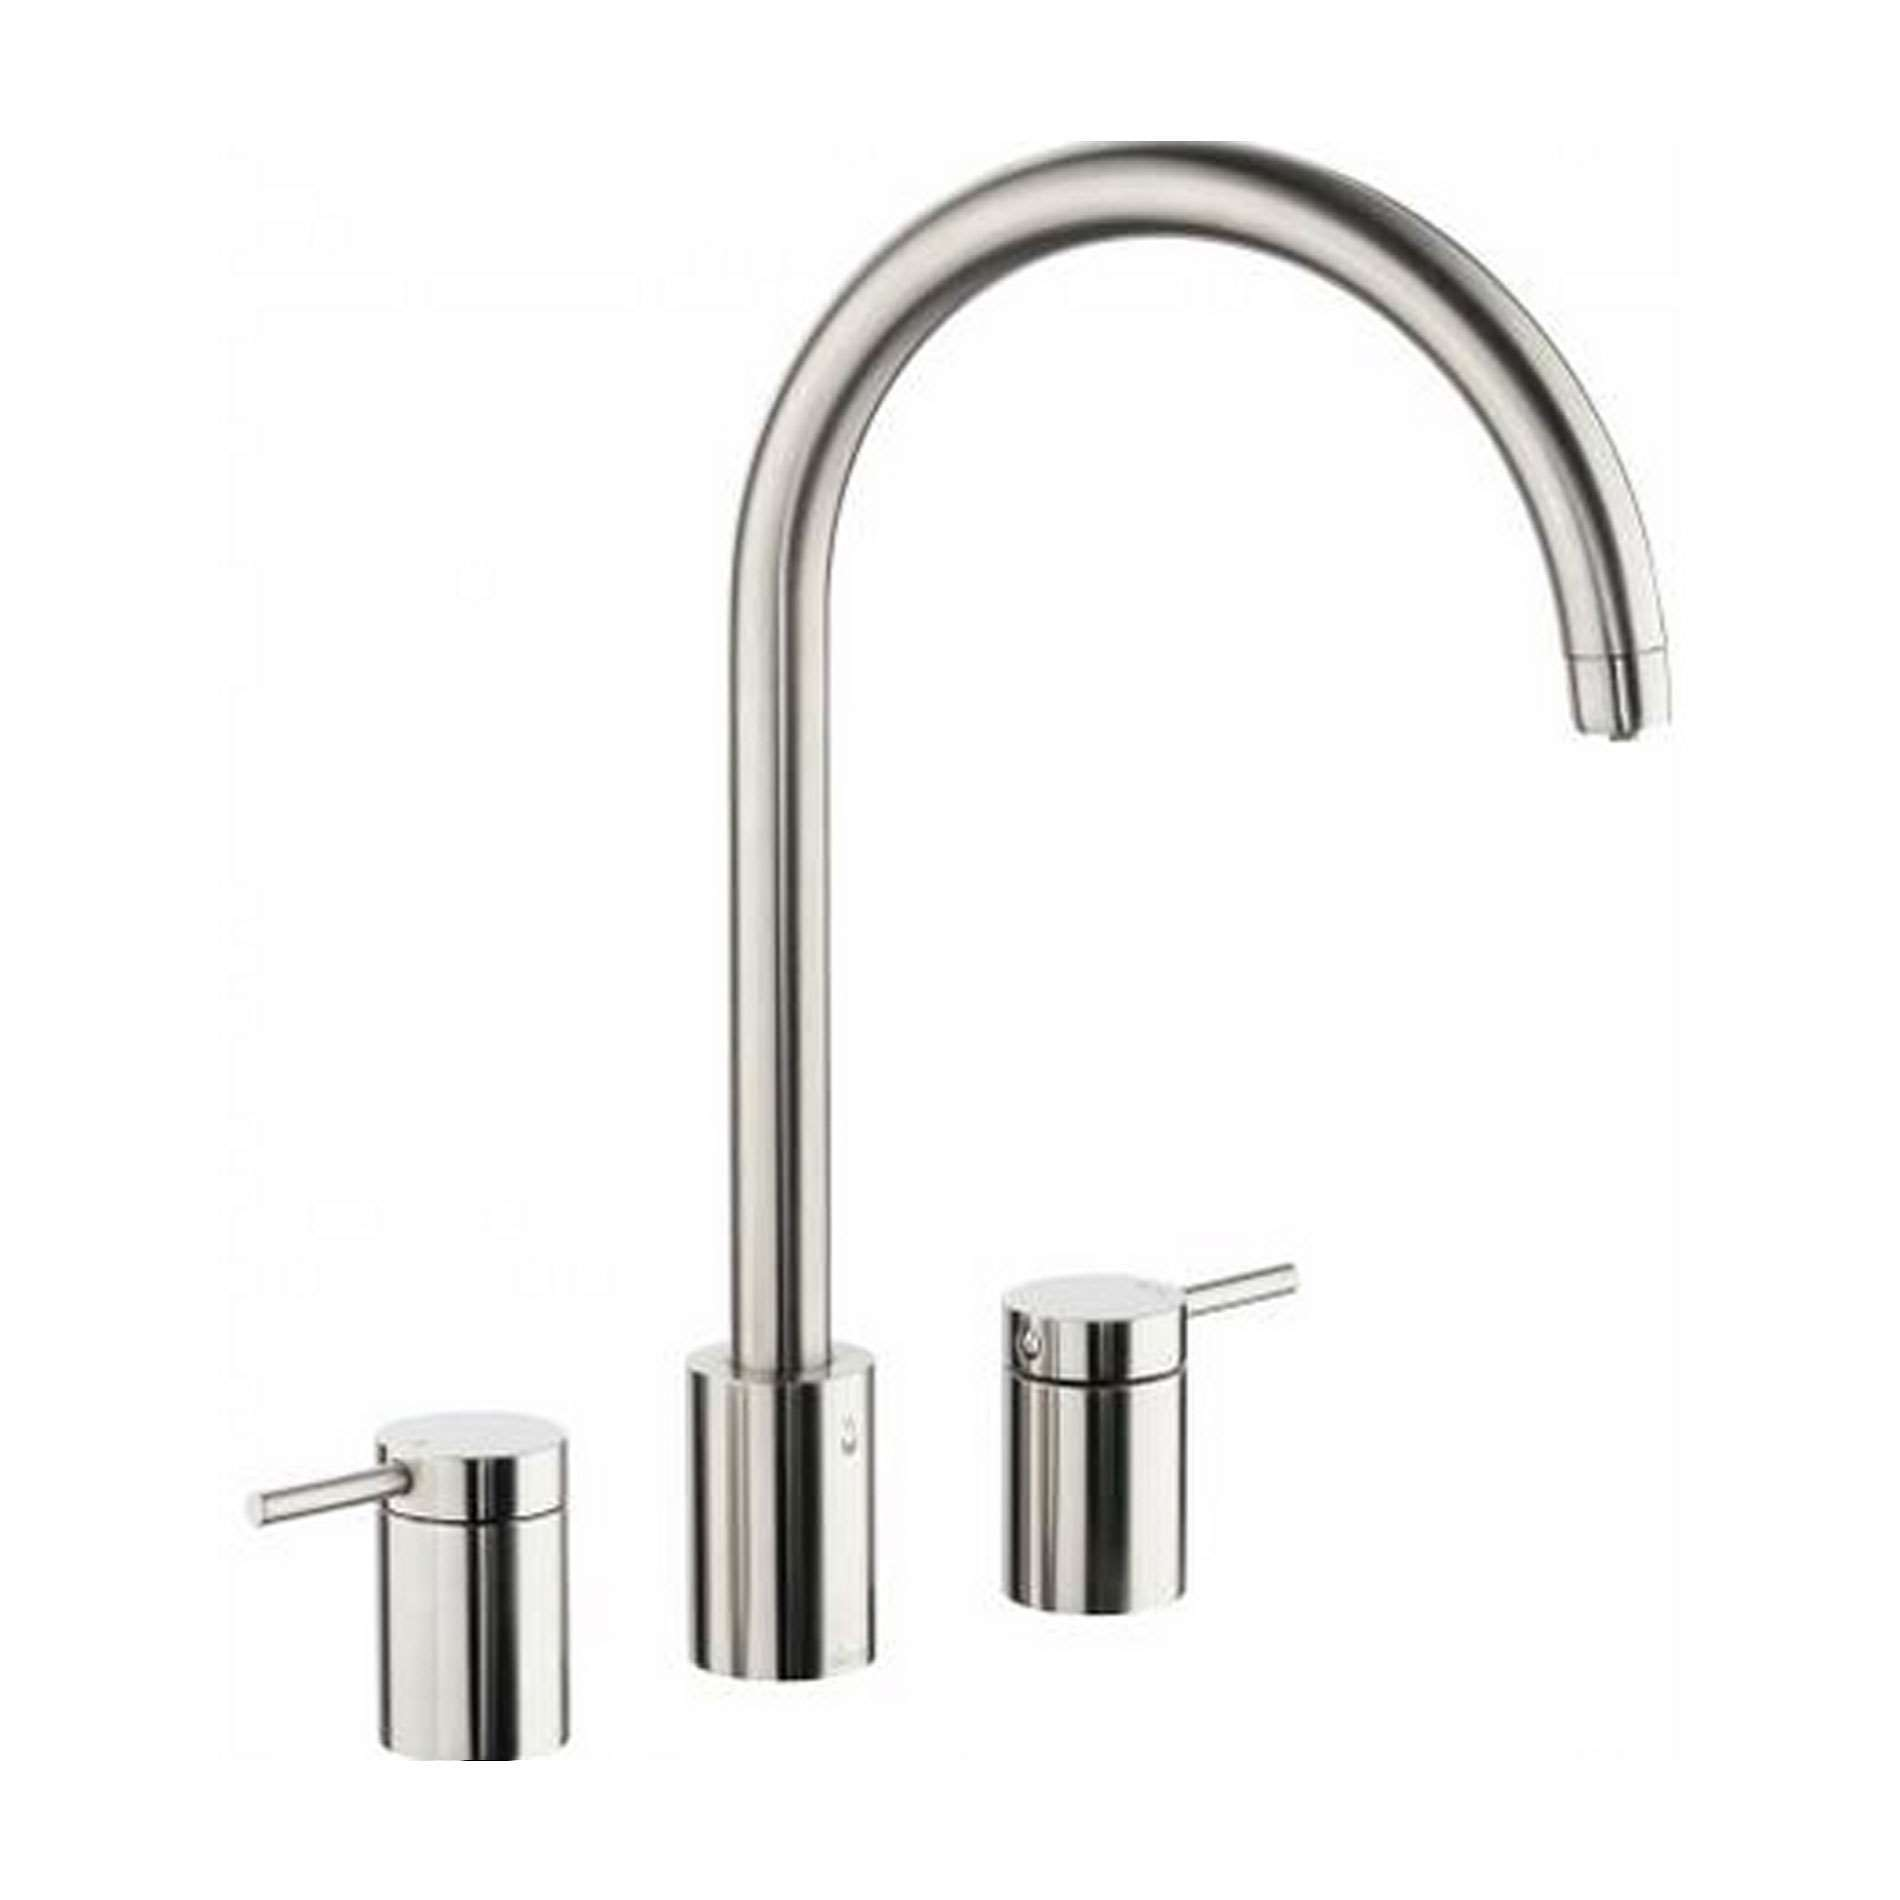 Picture of Pronteau Profile Three Part PT1008 Brushed Nickel Tap